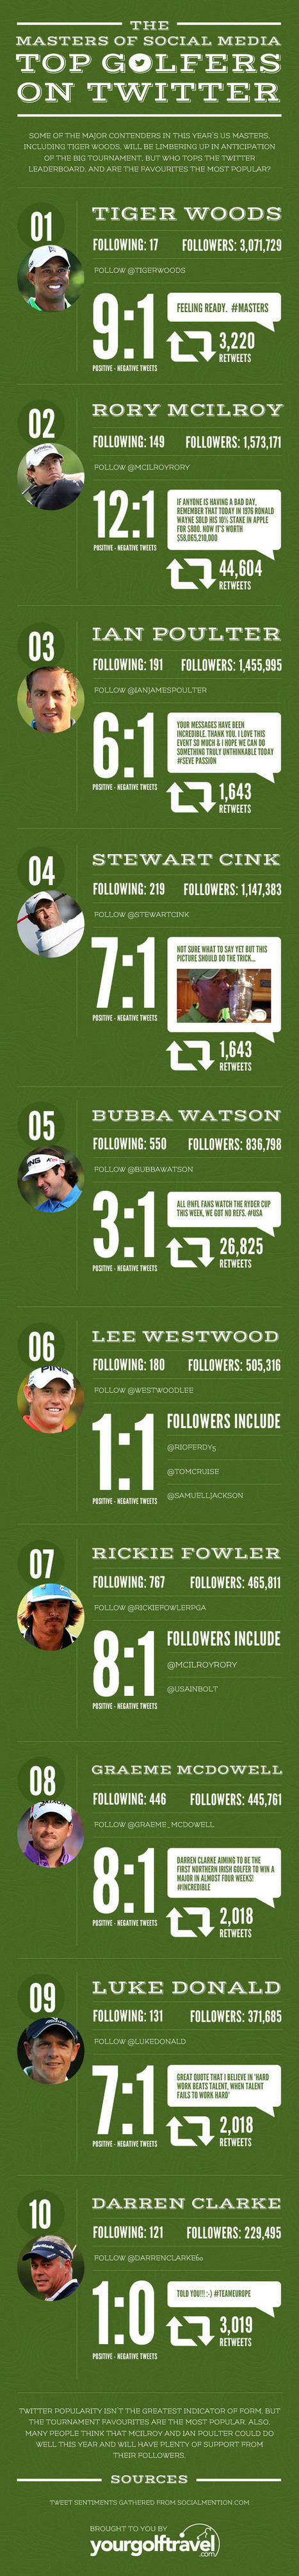 The Social Side of Golf [infographic] | Golf Infographics | Scoop.it